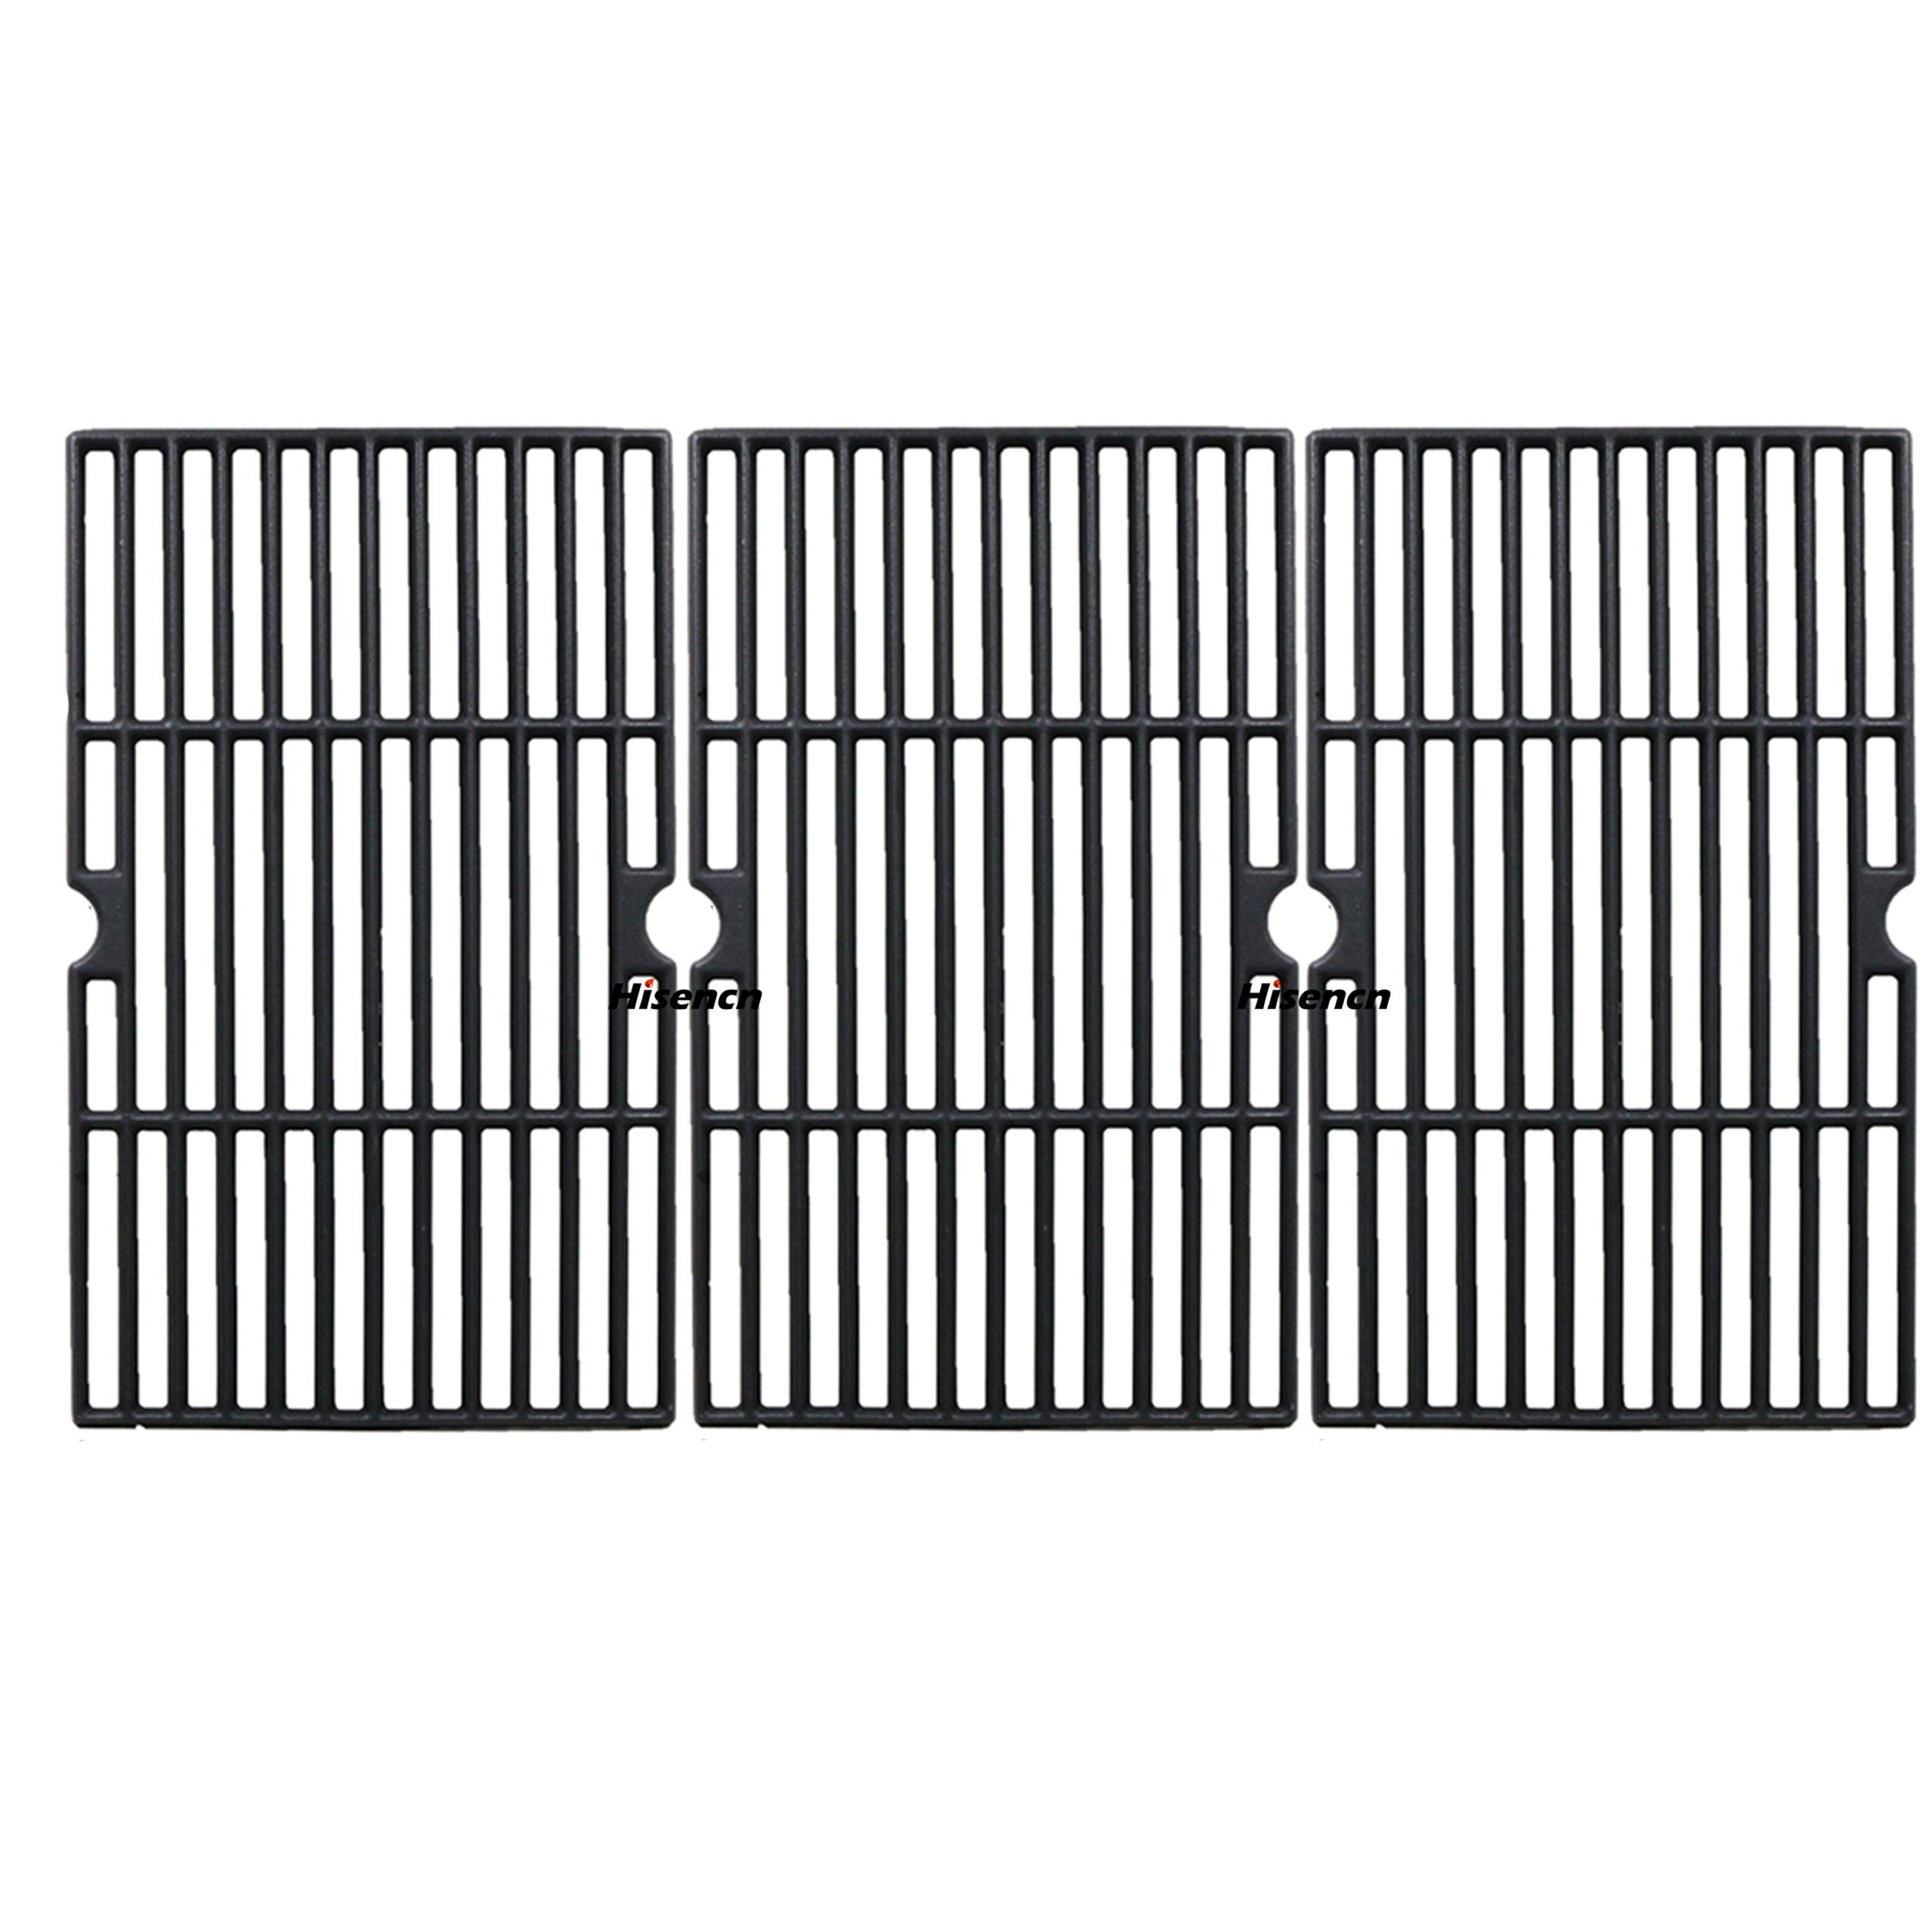 Hisencn Matte Cast Iron Cooking Grid Grates Replacement for Dynaglo DGF510SBP, Uniflame GBC1059WB, GBC1059WE-C, Backyard Grill BY12-084-029-98 and Other Gas Grill Models, 16 1/4 in by Hisencn